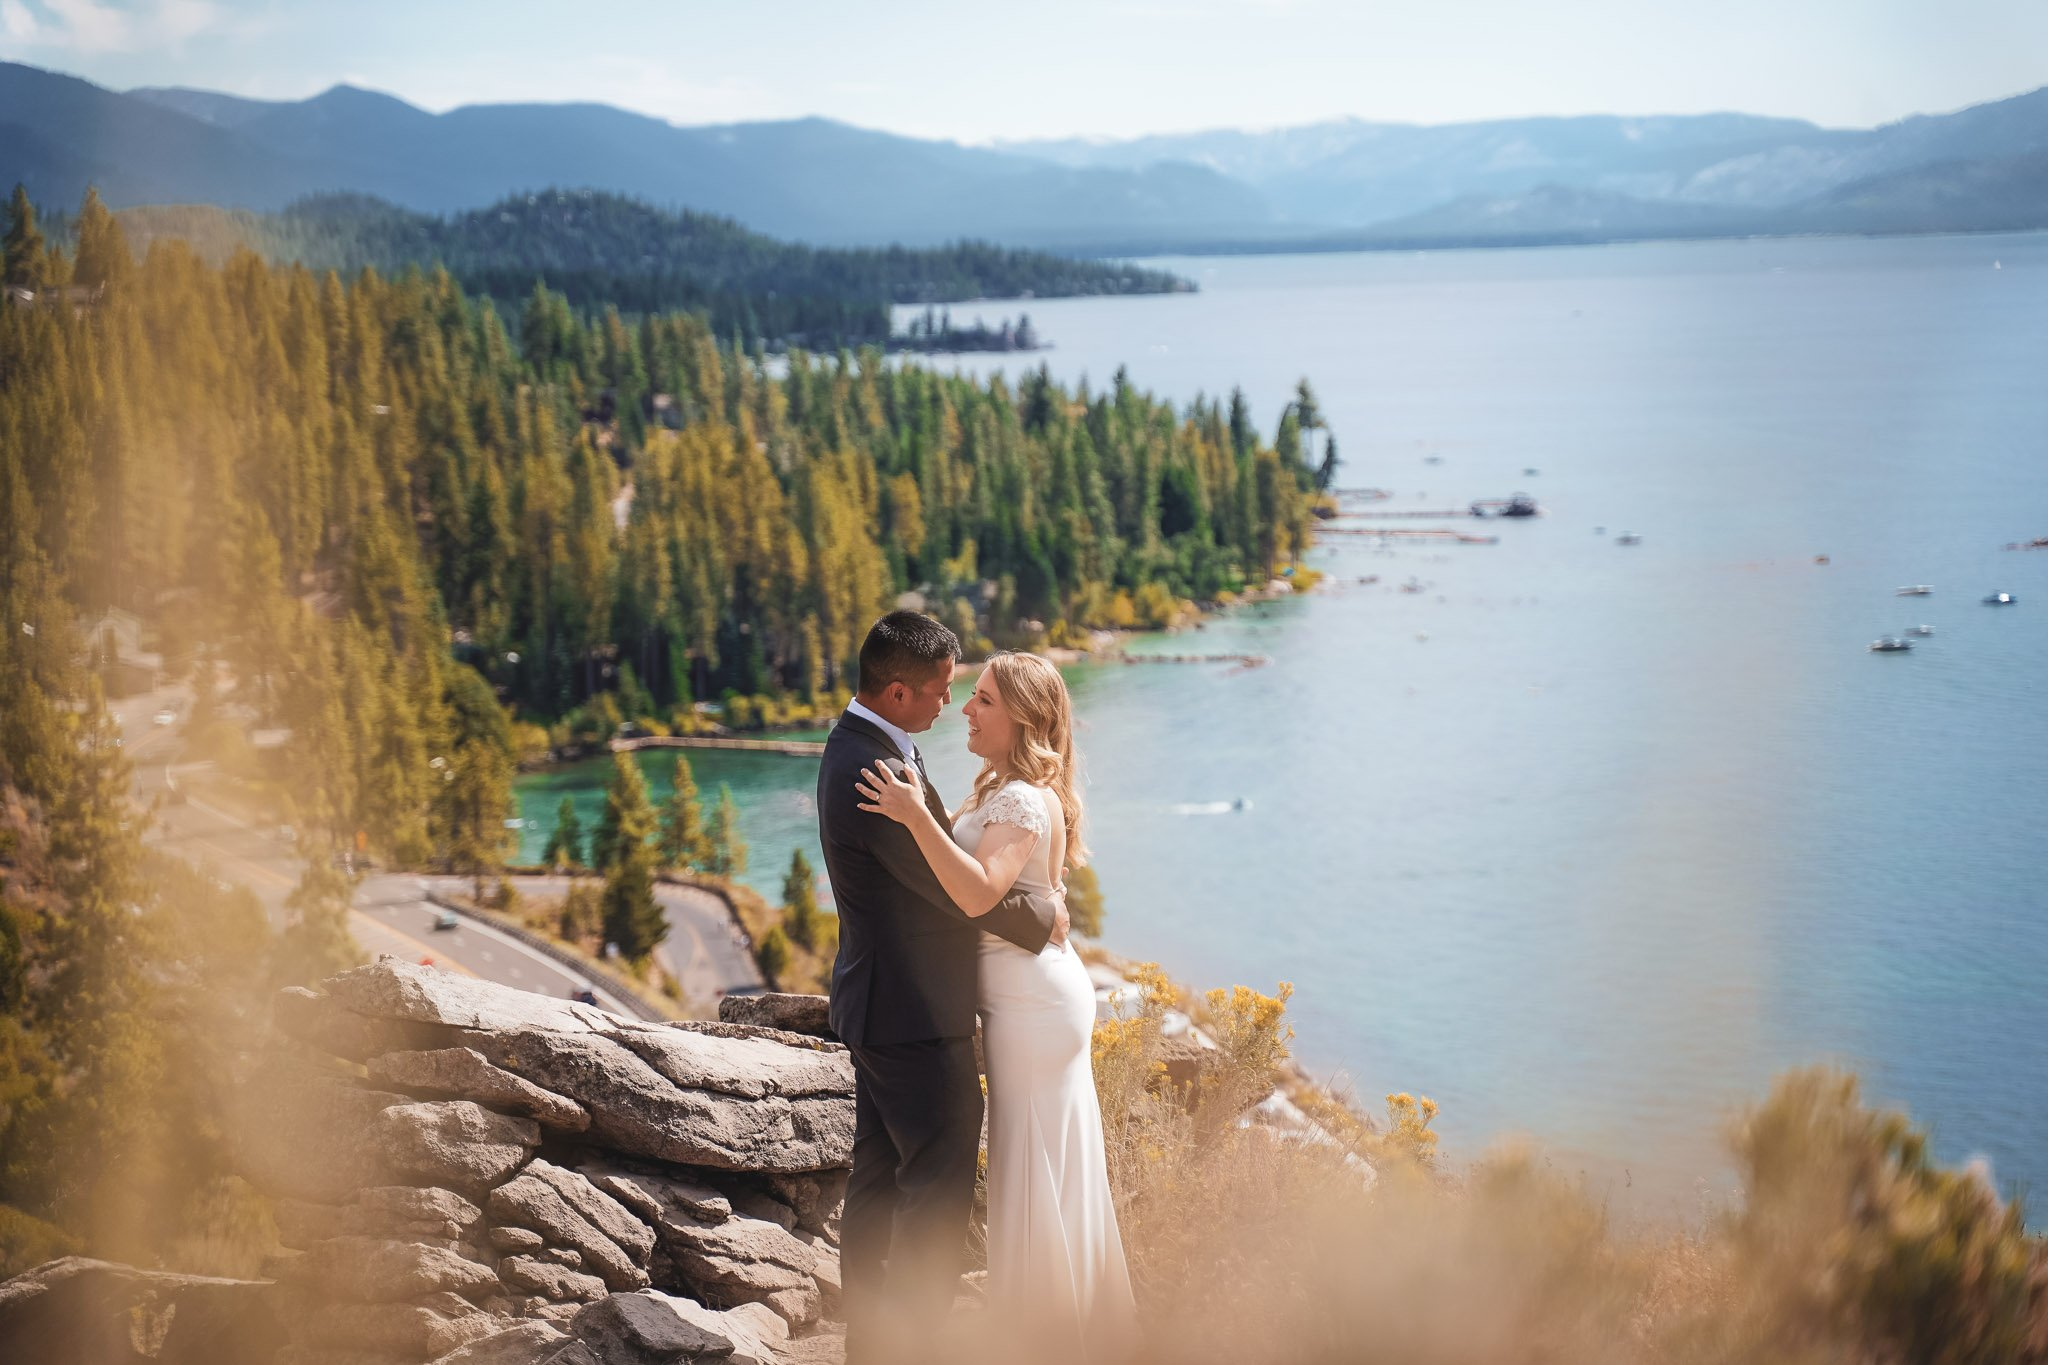 Bride and groom dancing with Lake Tahoe as a backdrop with mountains and lake